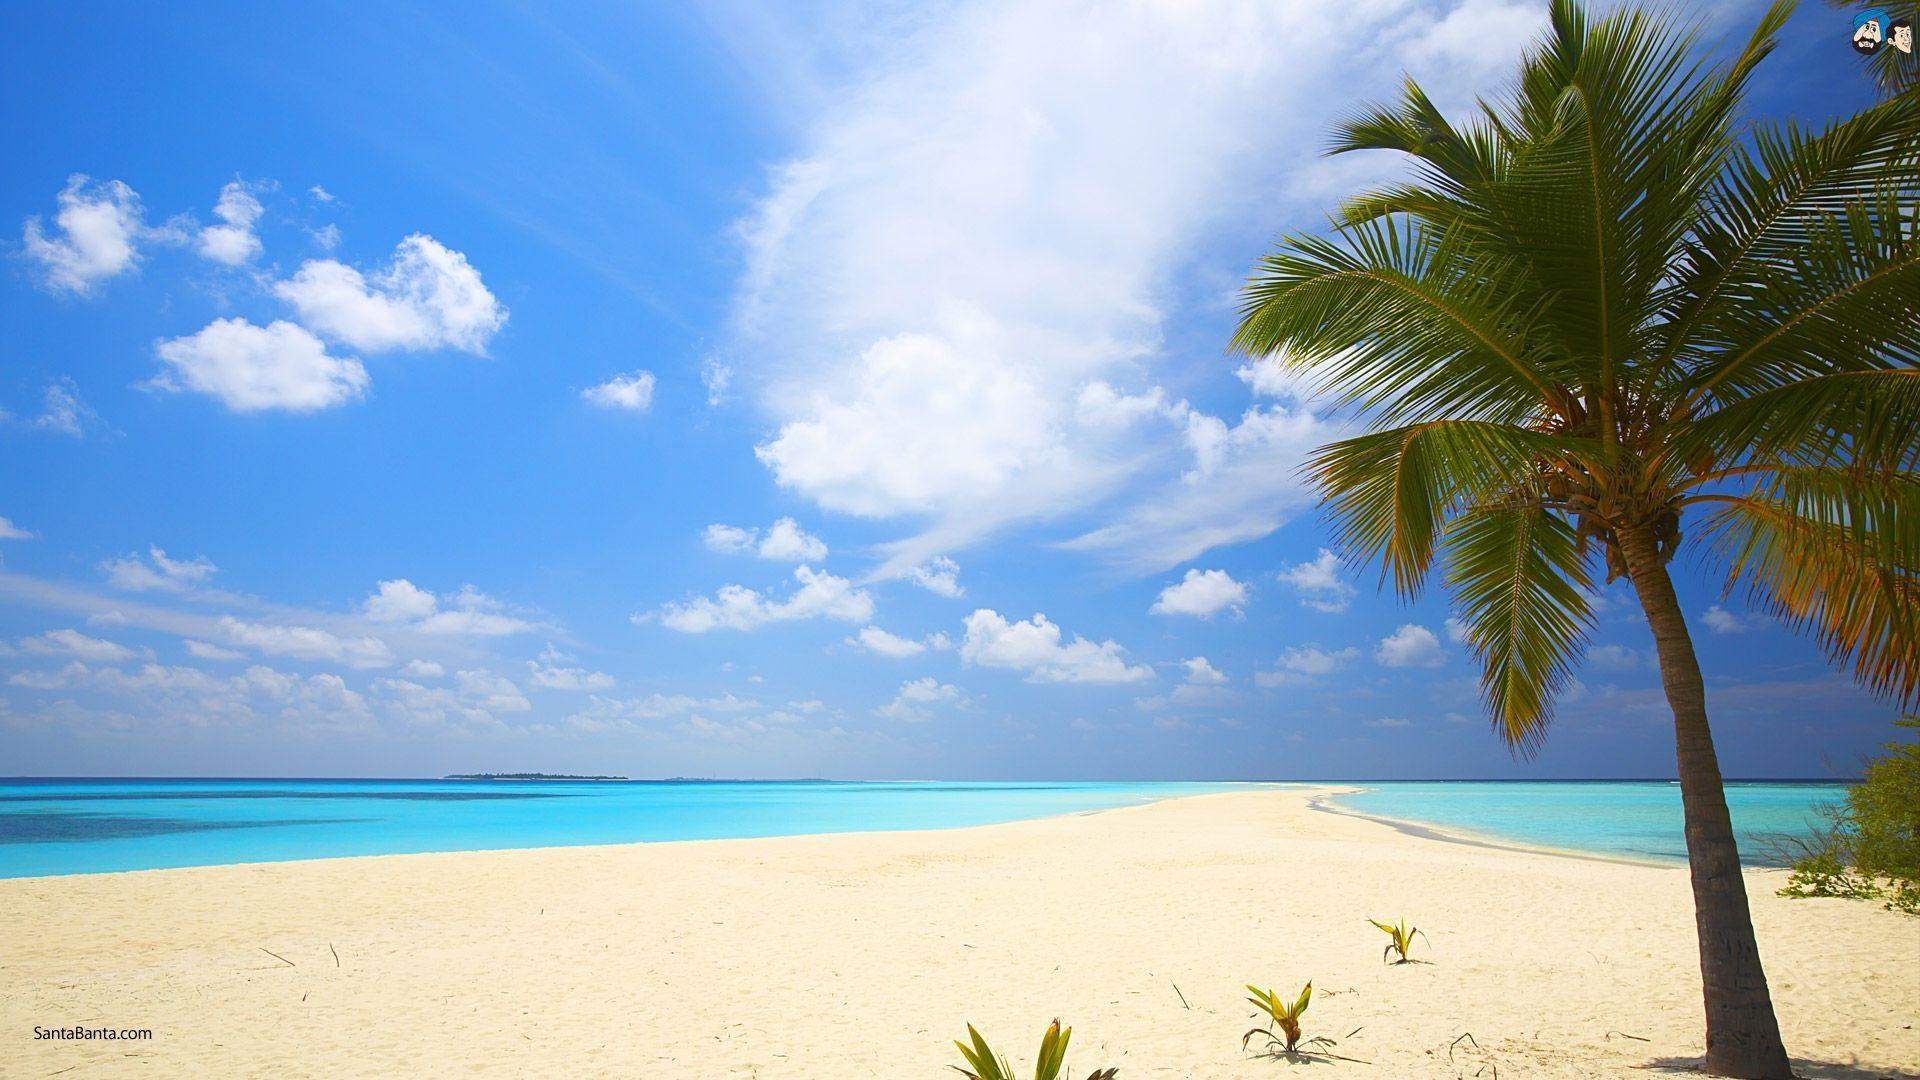 Beach Backgrounds Image 1920x1080